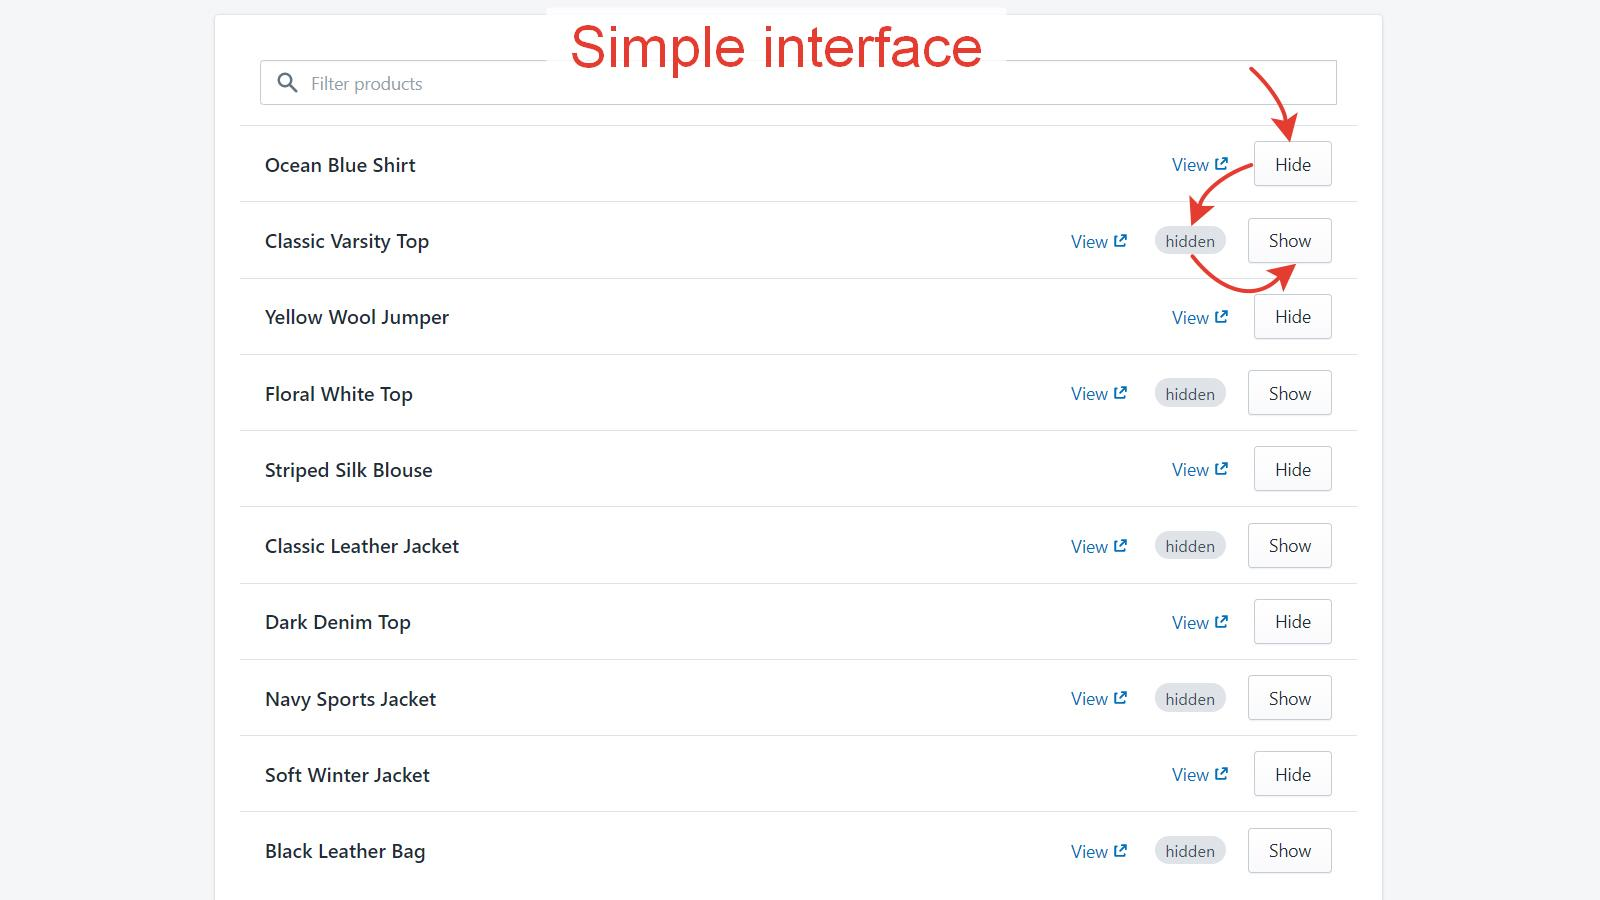 Simple interface